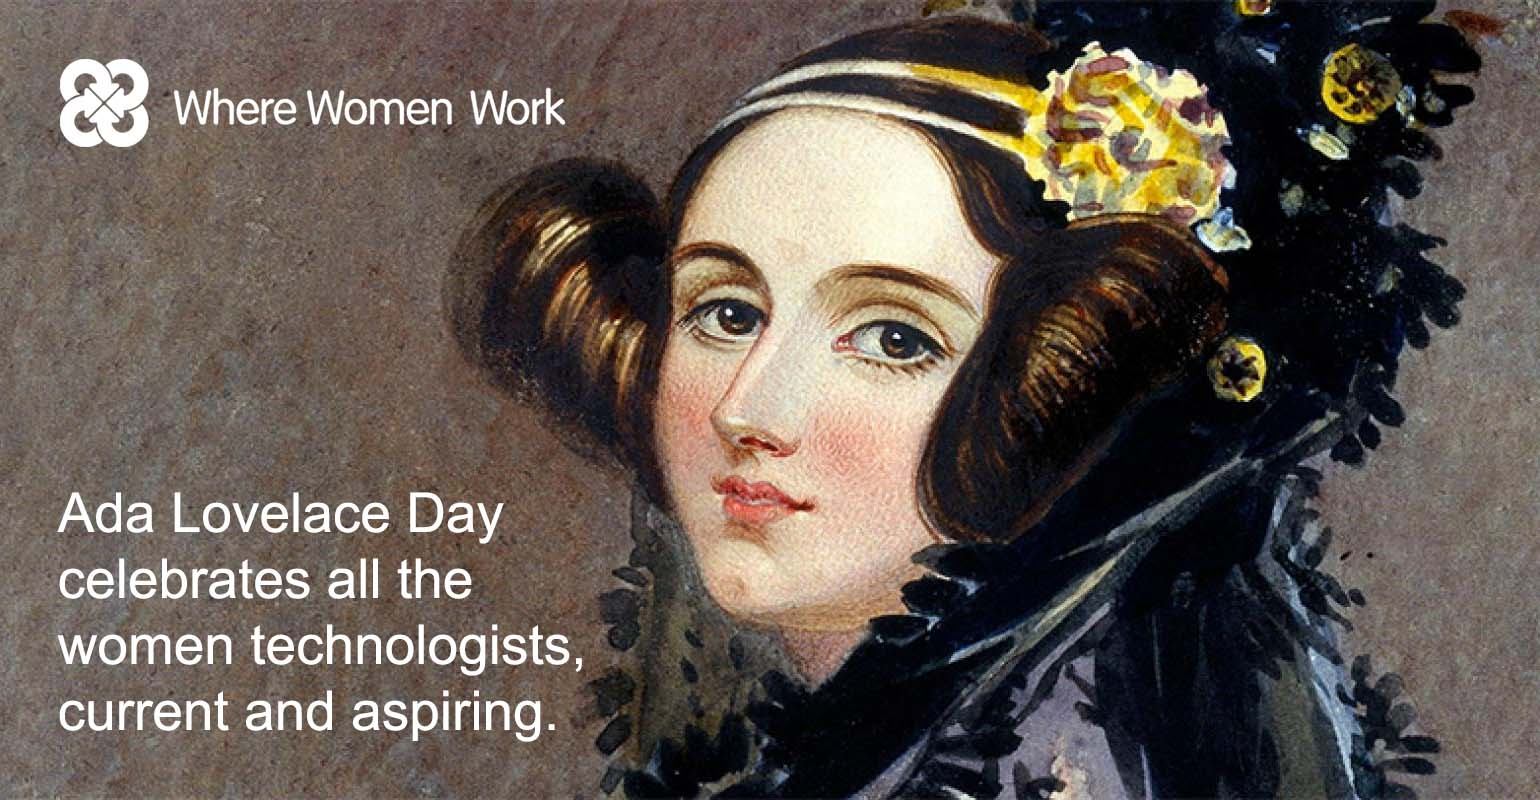 Ada Lovelace Day: Where Women Work celebrates inclusive tech